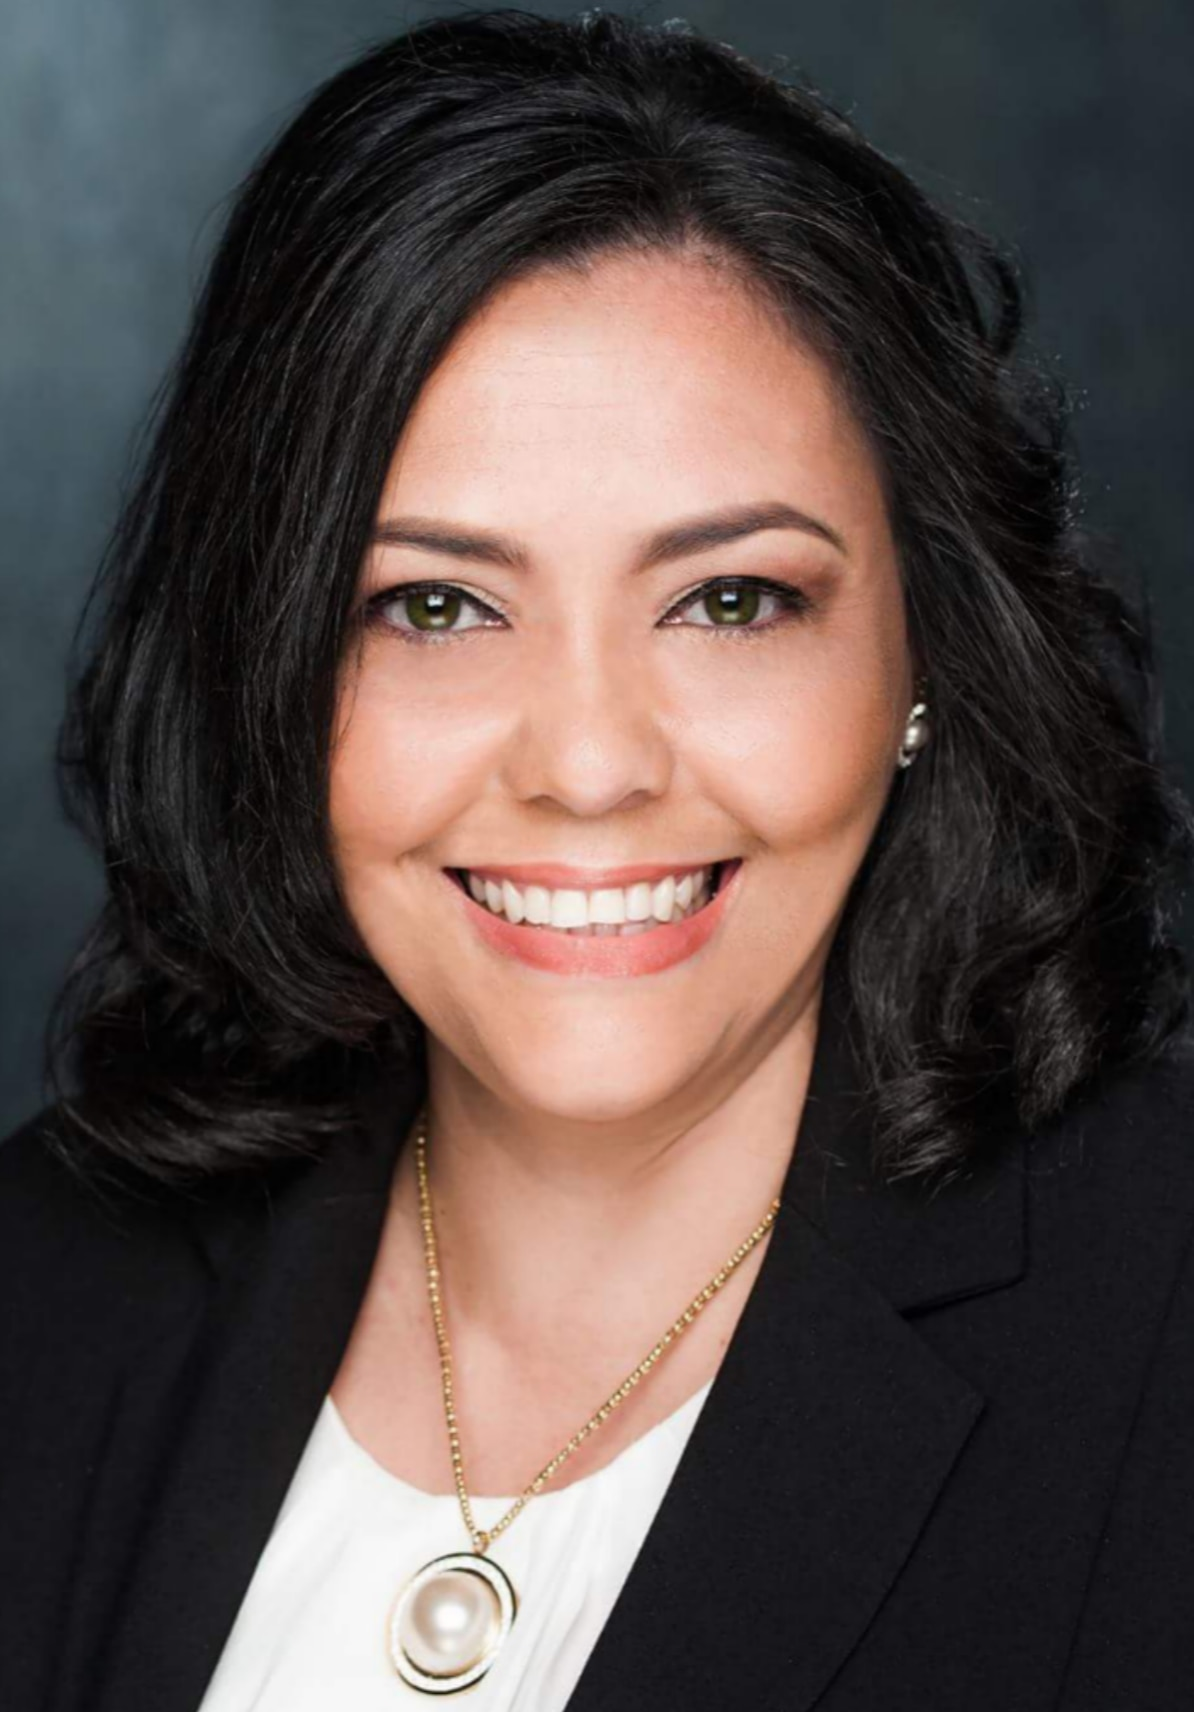 INDHIRA A. BAEZ  Your Financial Professional & Insurance Agent